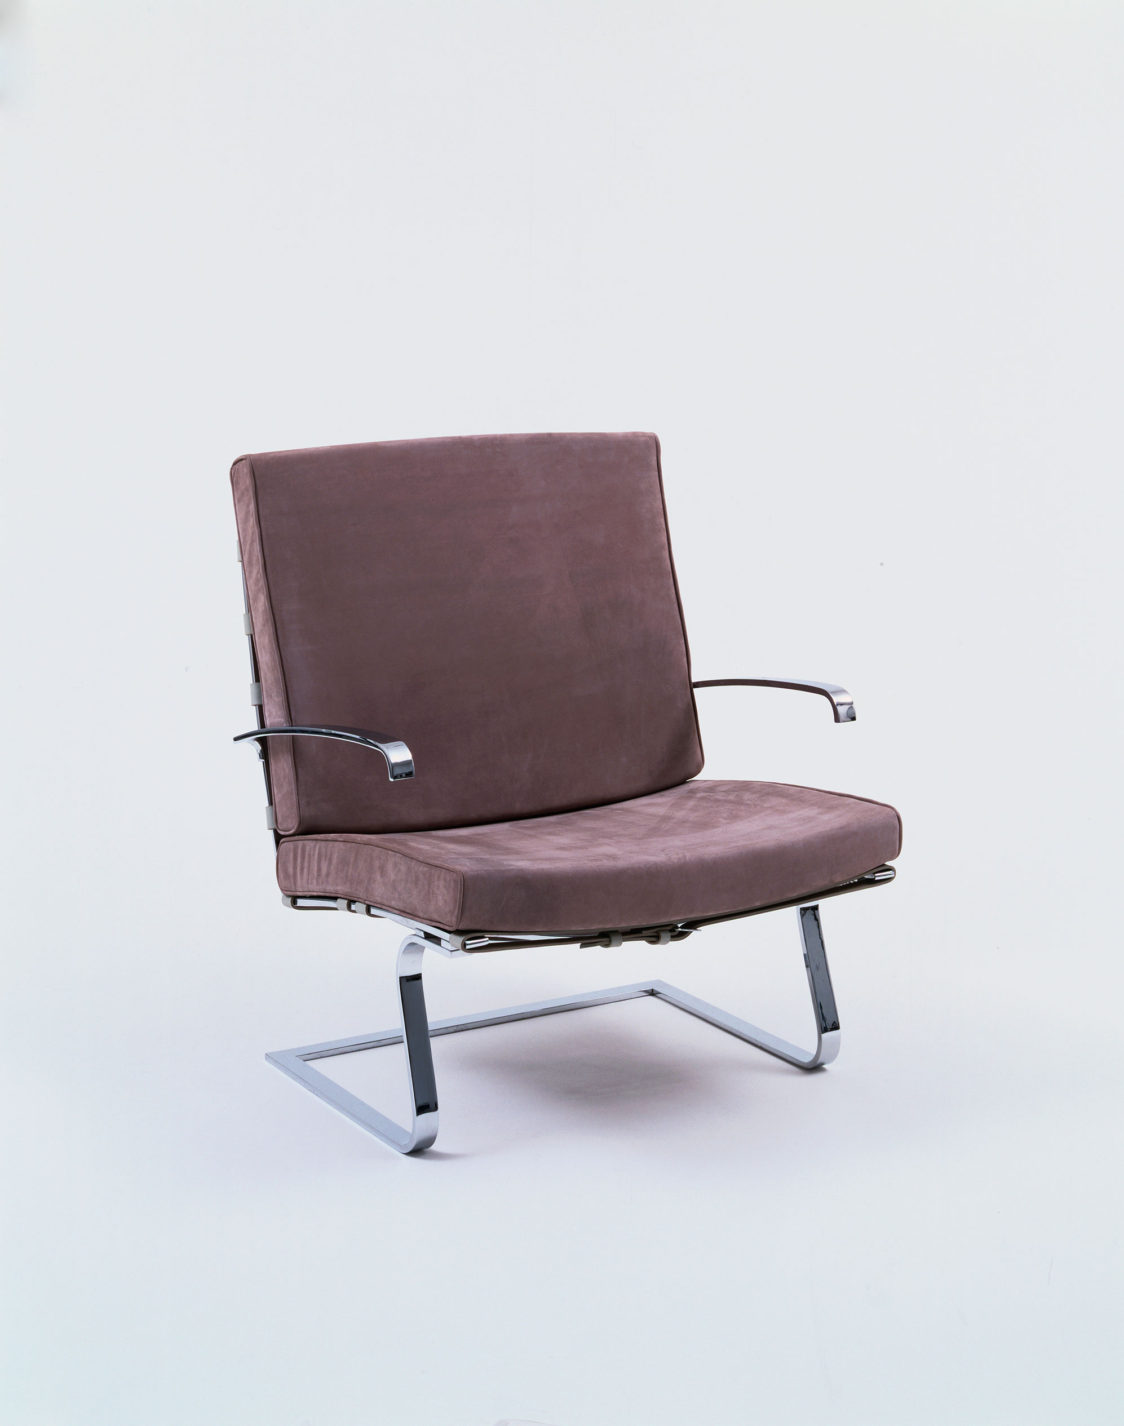 Cantilevered armchair with strap-steel frame and cushions for the seat and back covered in greyish-brown leather.